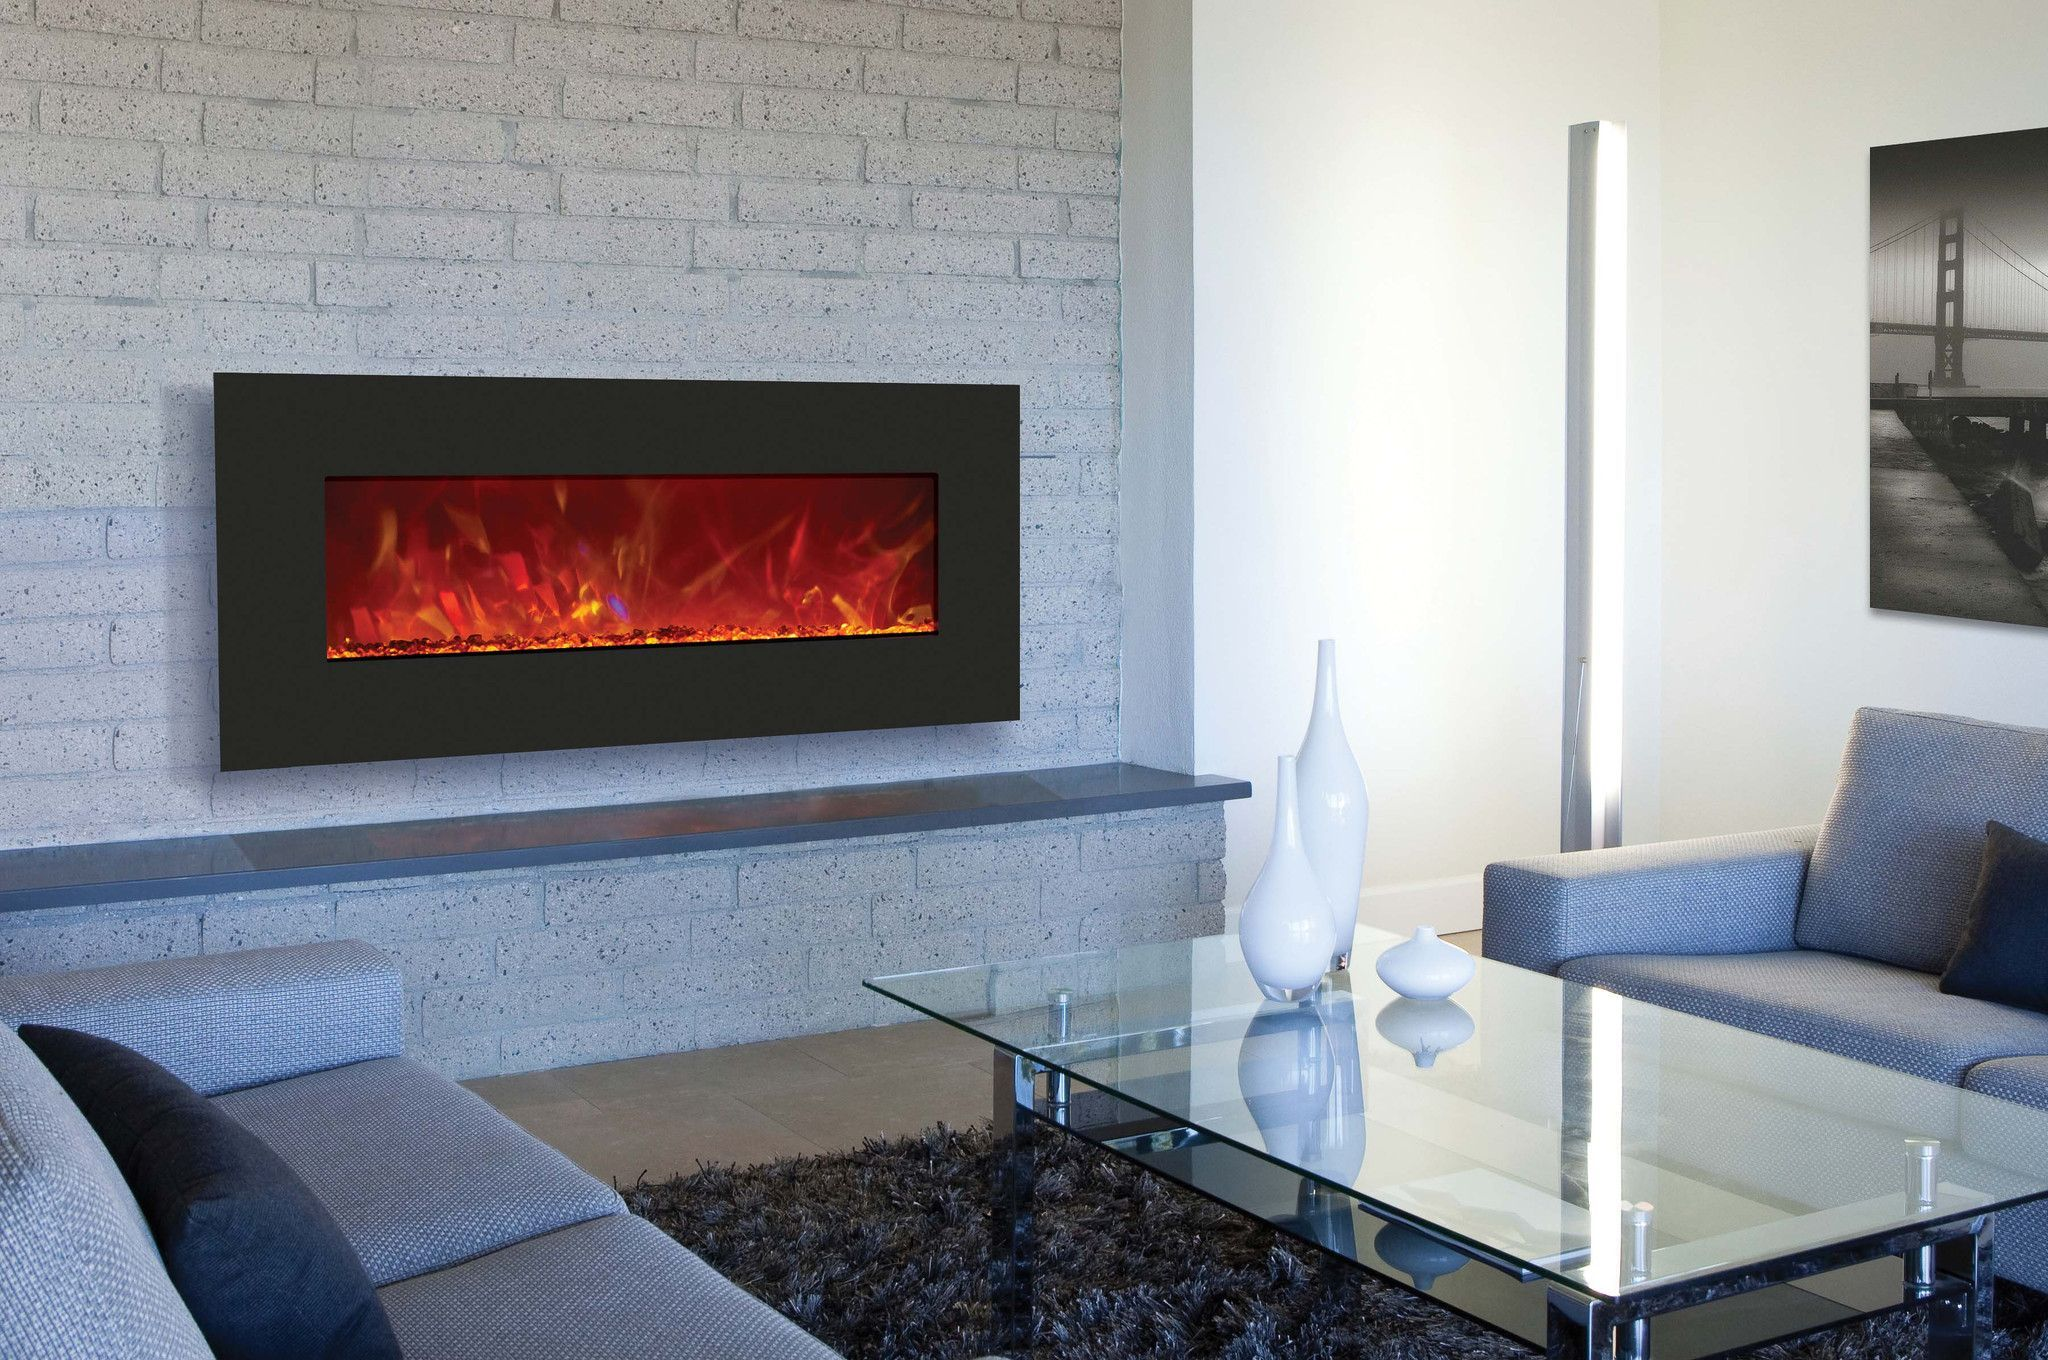 Amantii Built In Wall Mounted Electric Fireplace Wm Bi 43 5123